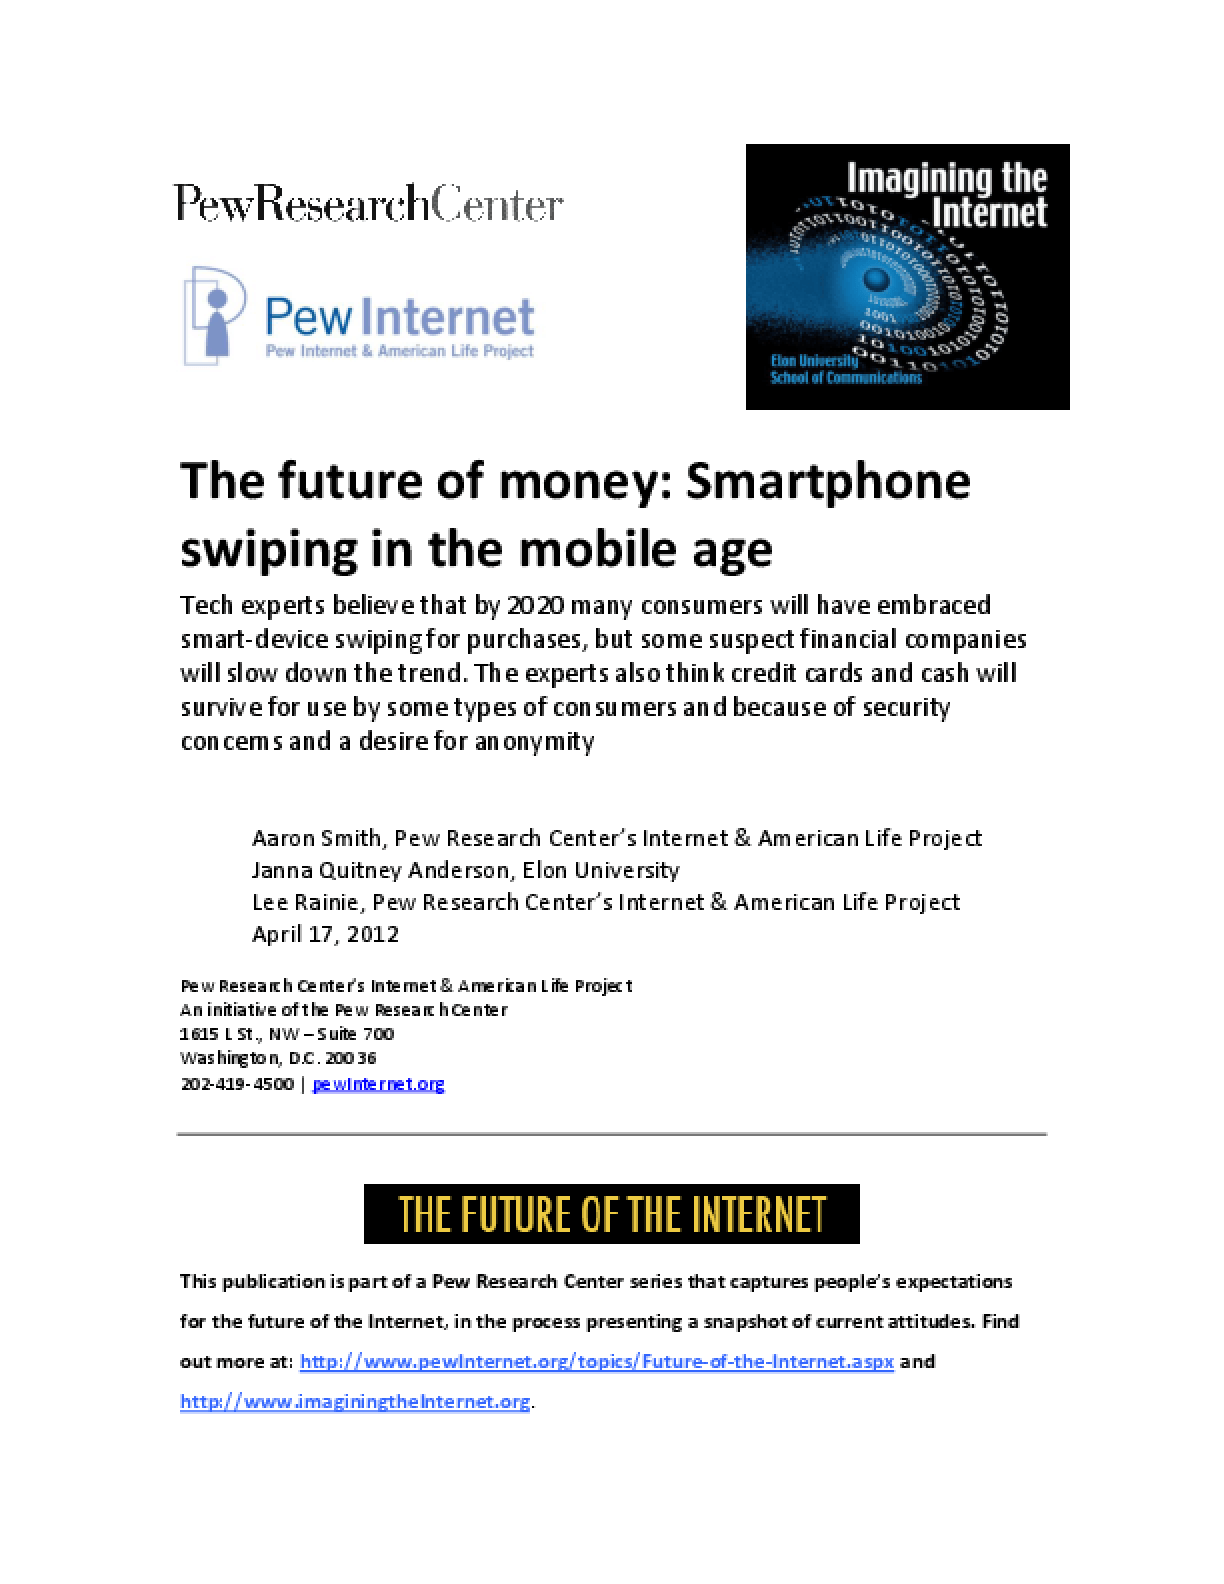 The Future of Money in a Mobile Age